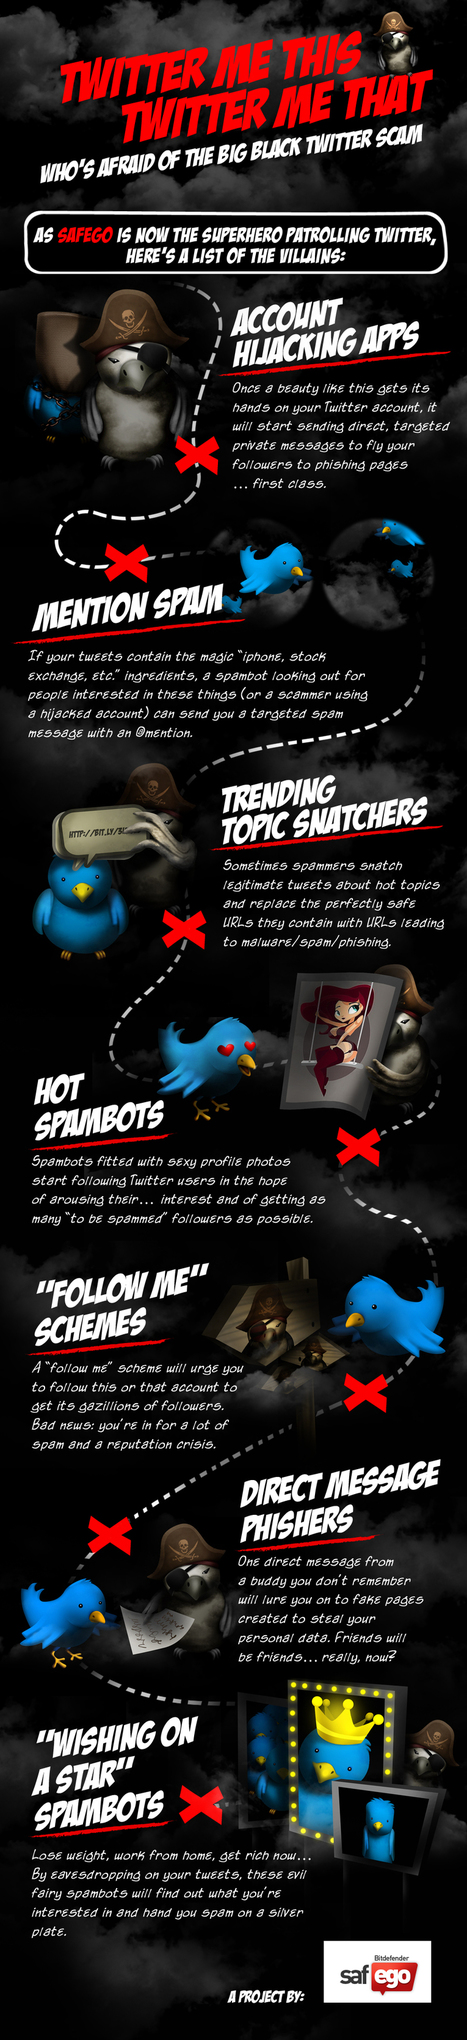 [Infographic] Types of Twitter Scams | Social Media and its influence | Scoop.it